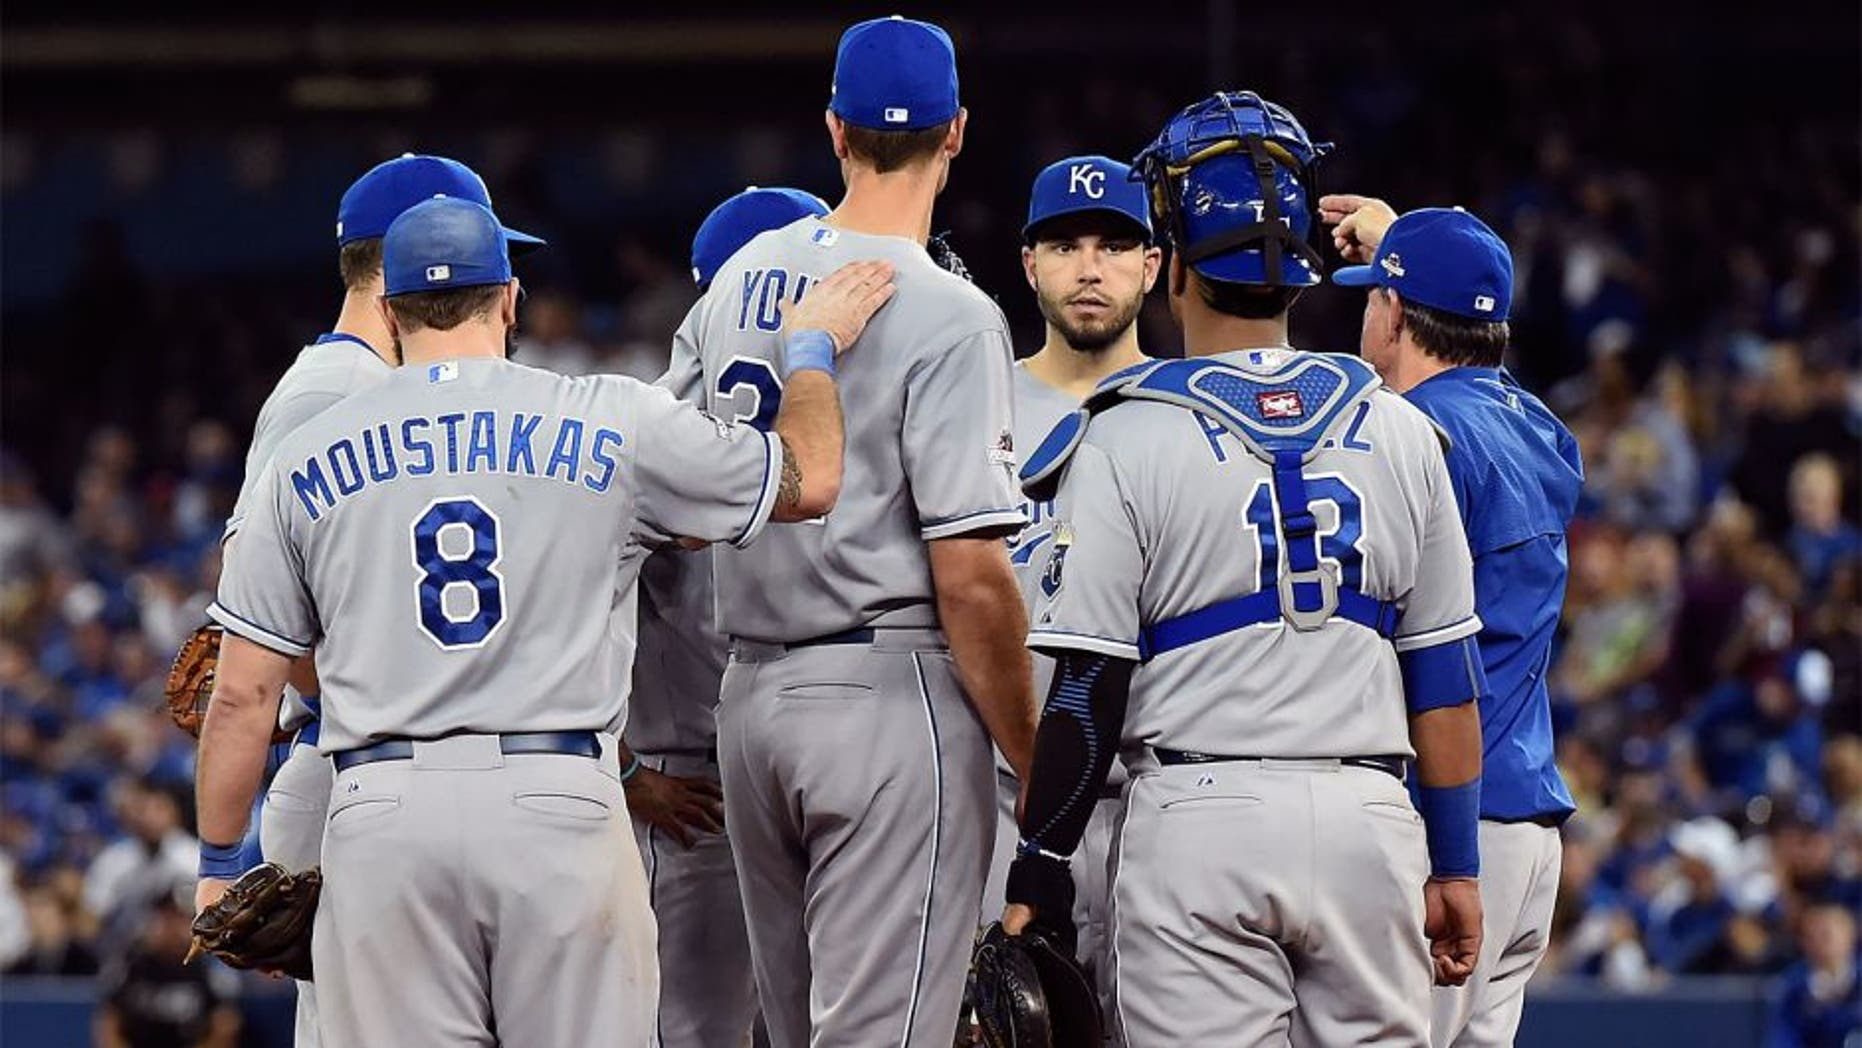 Oct 20, 2015; Toronto, Ontario, CAN; Kansas City Royals starting pitcher Chris Young (32) is patted on the back by third baseman Mike Moustakas (8) as manager Ned Yost (3) relieves him during the fifth inning against the Toronto Blue Jays in game four of the ALCS at Rogers Centre. Mandatory Credit: Dan Hamilton-USA TODAY Sports